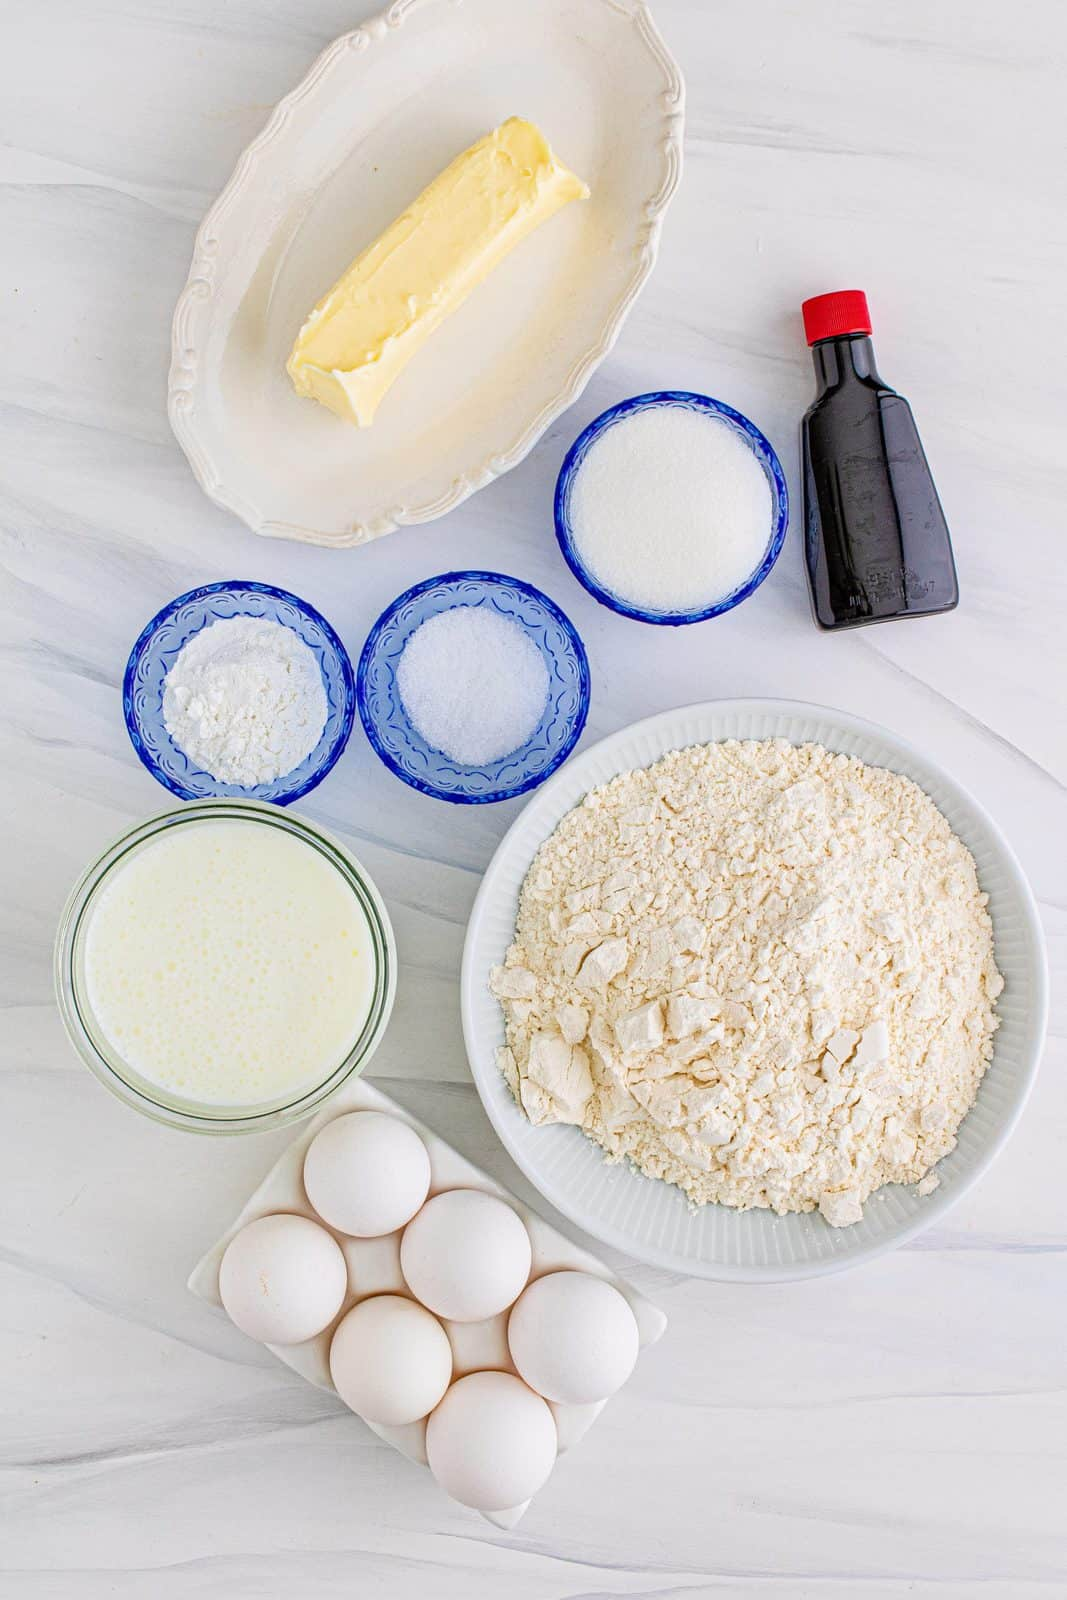 Ingredients needed: unsalted butter, buttermilk, eggs, vanilla extract, all-purpose flour, granulated sugar, baking powder.